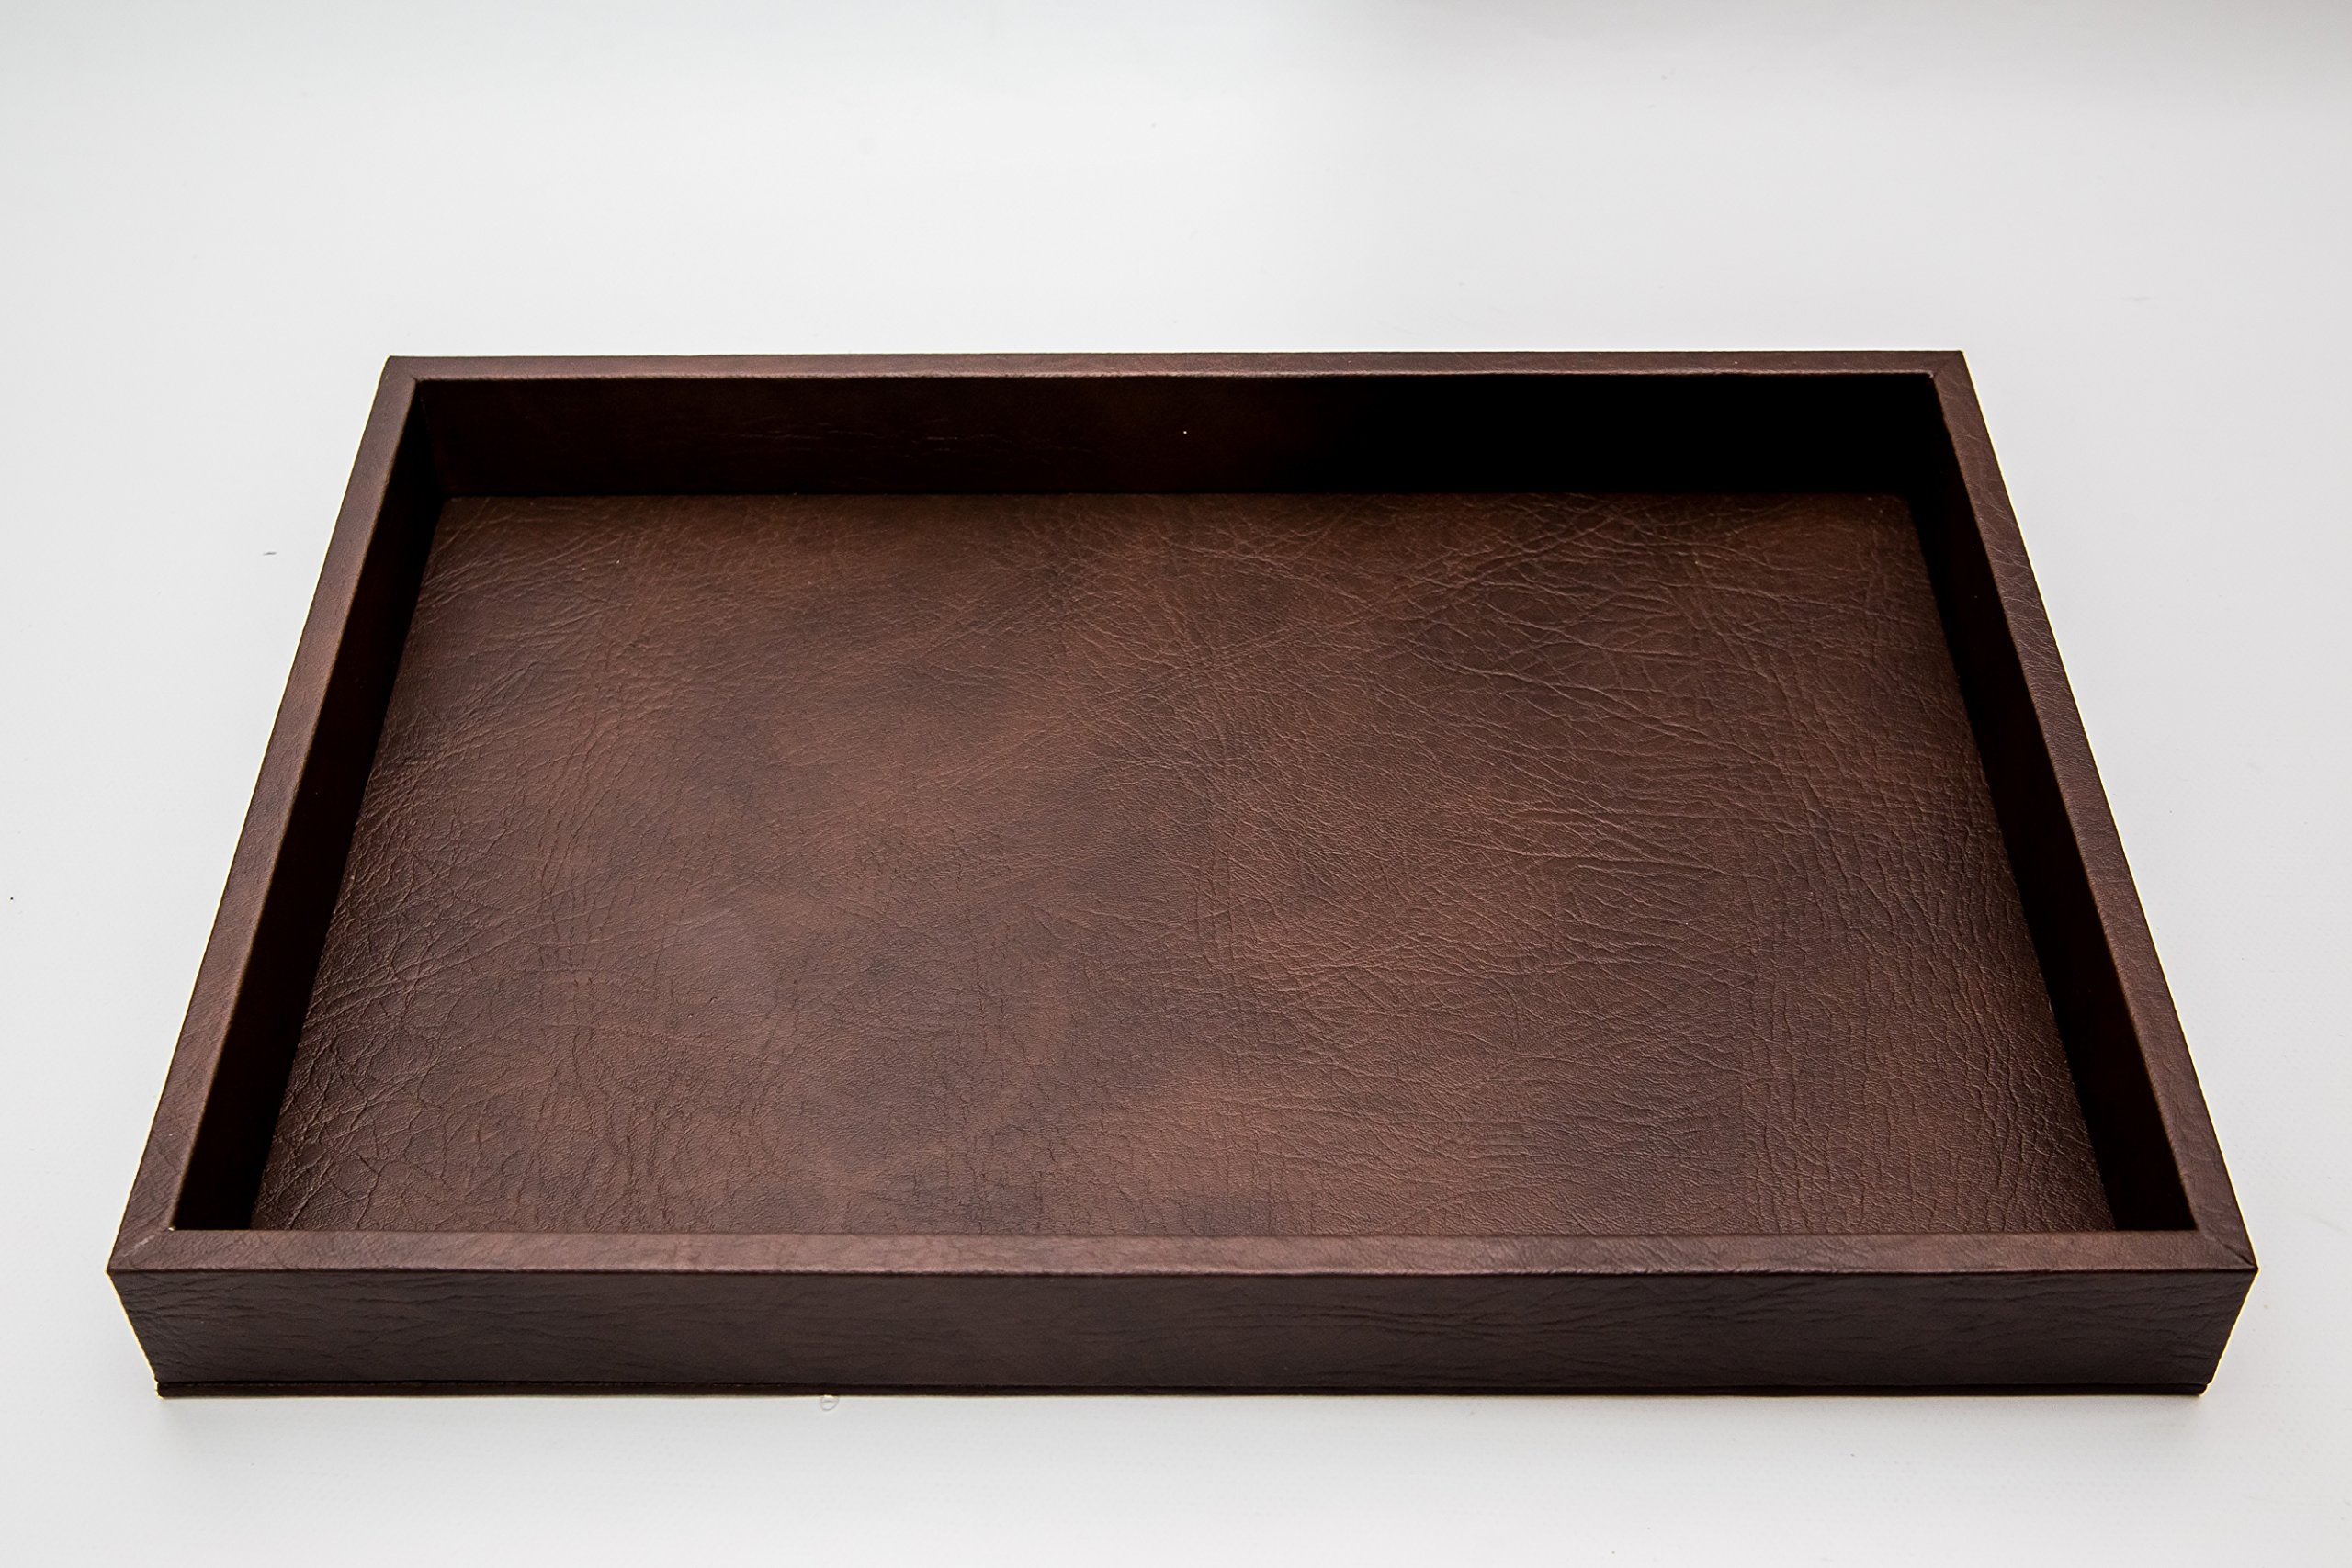 Leather Tray Made Of Wood - 18'' X 13'' - Brown